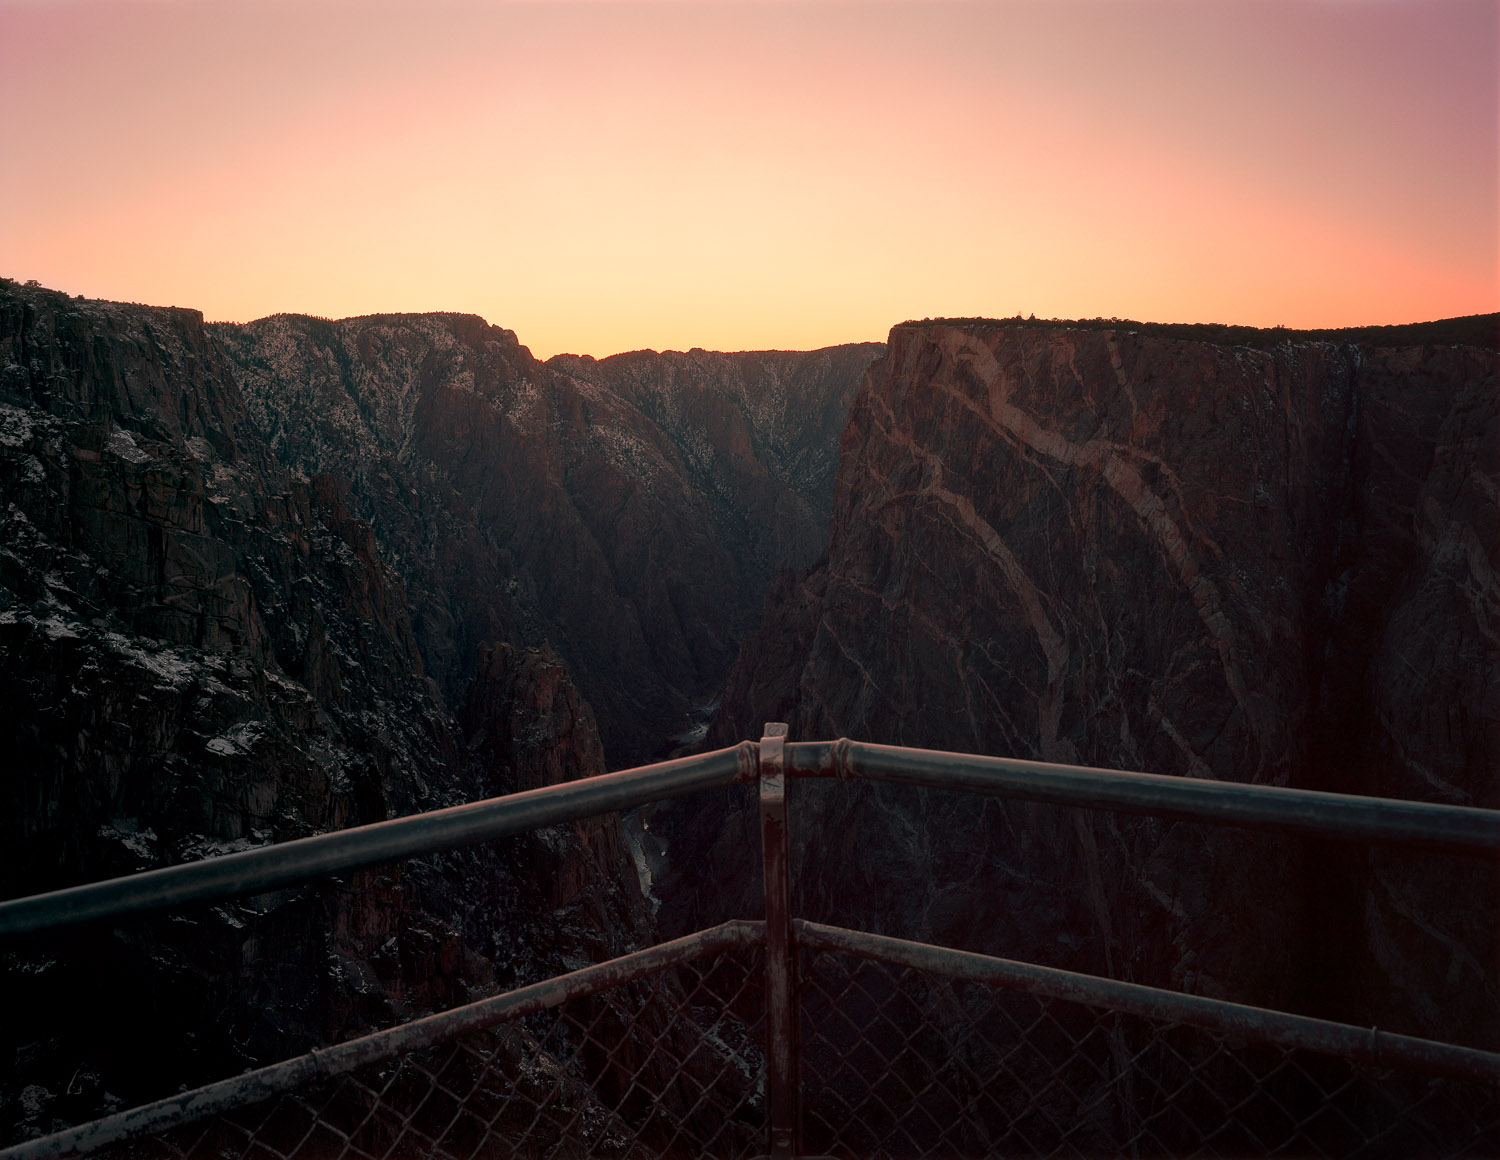 Painted Wall View, Black Canyon of the Gunnison N.P., Montrose, CO, 2015